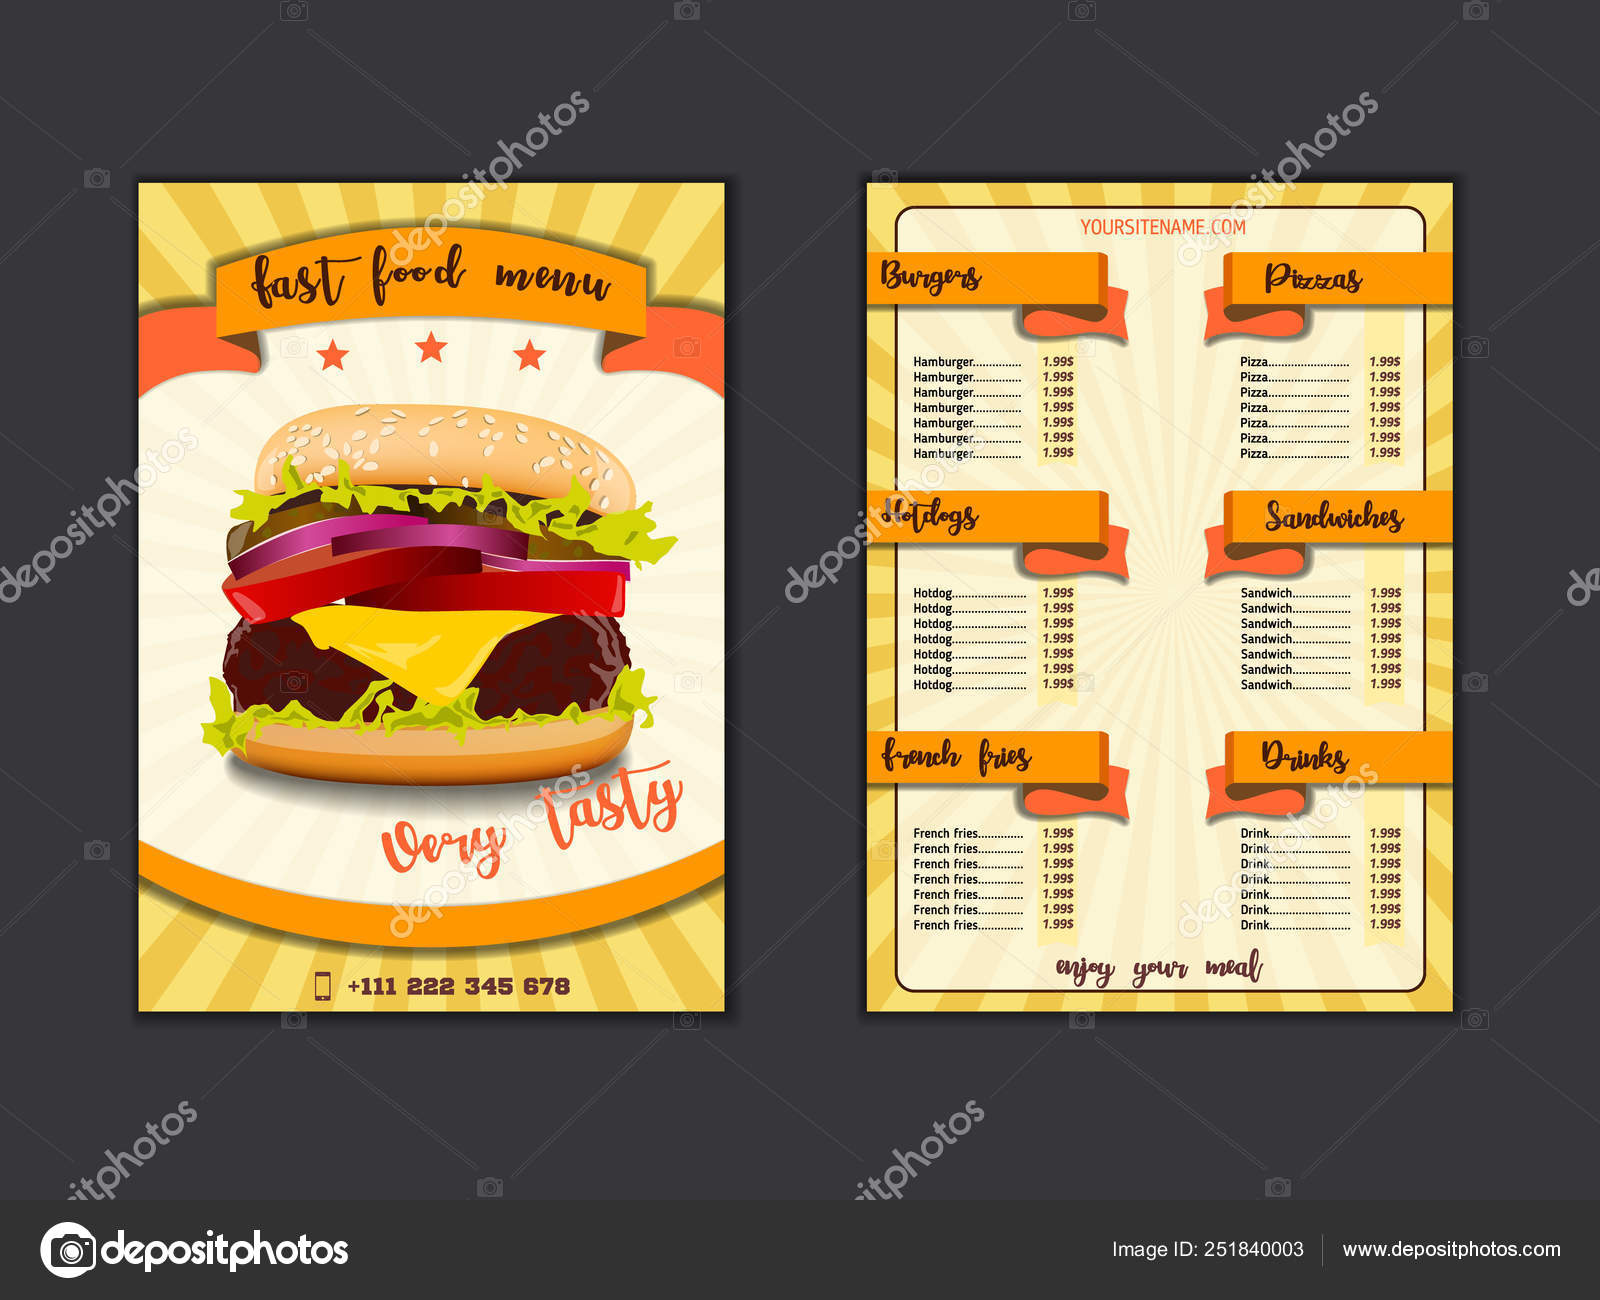 Fast Food Restaurant Menu Template Lunch Dishes And Drinks List With Prices And Burger Pizza Hot Dog Soda Fries Coffee Donut Sandwich For Folding Brochure Design Stock Vector C Yotor 251840003